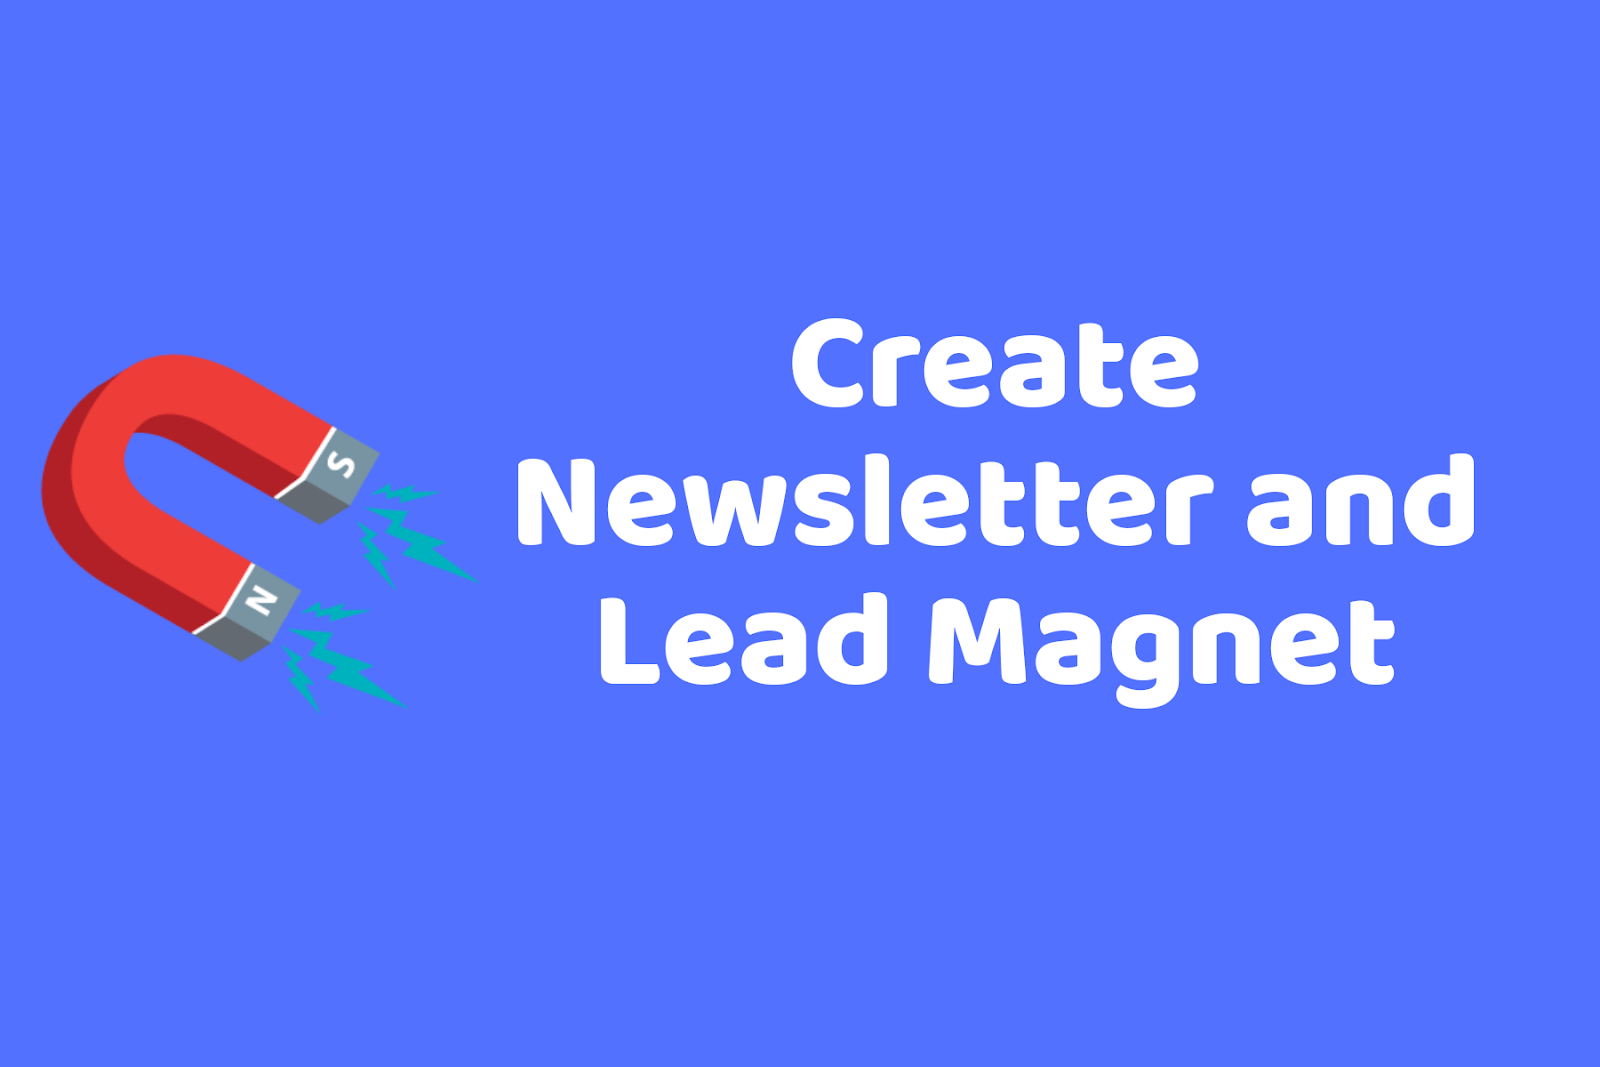 Create newsletter and lead magnet